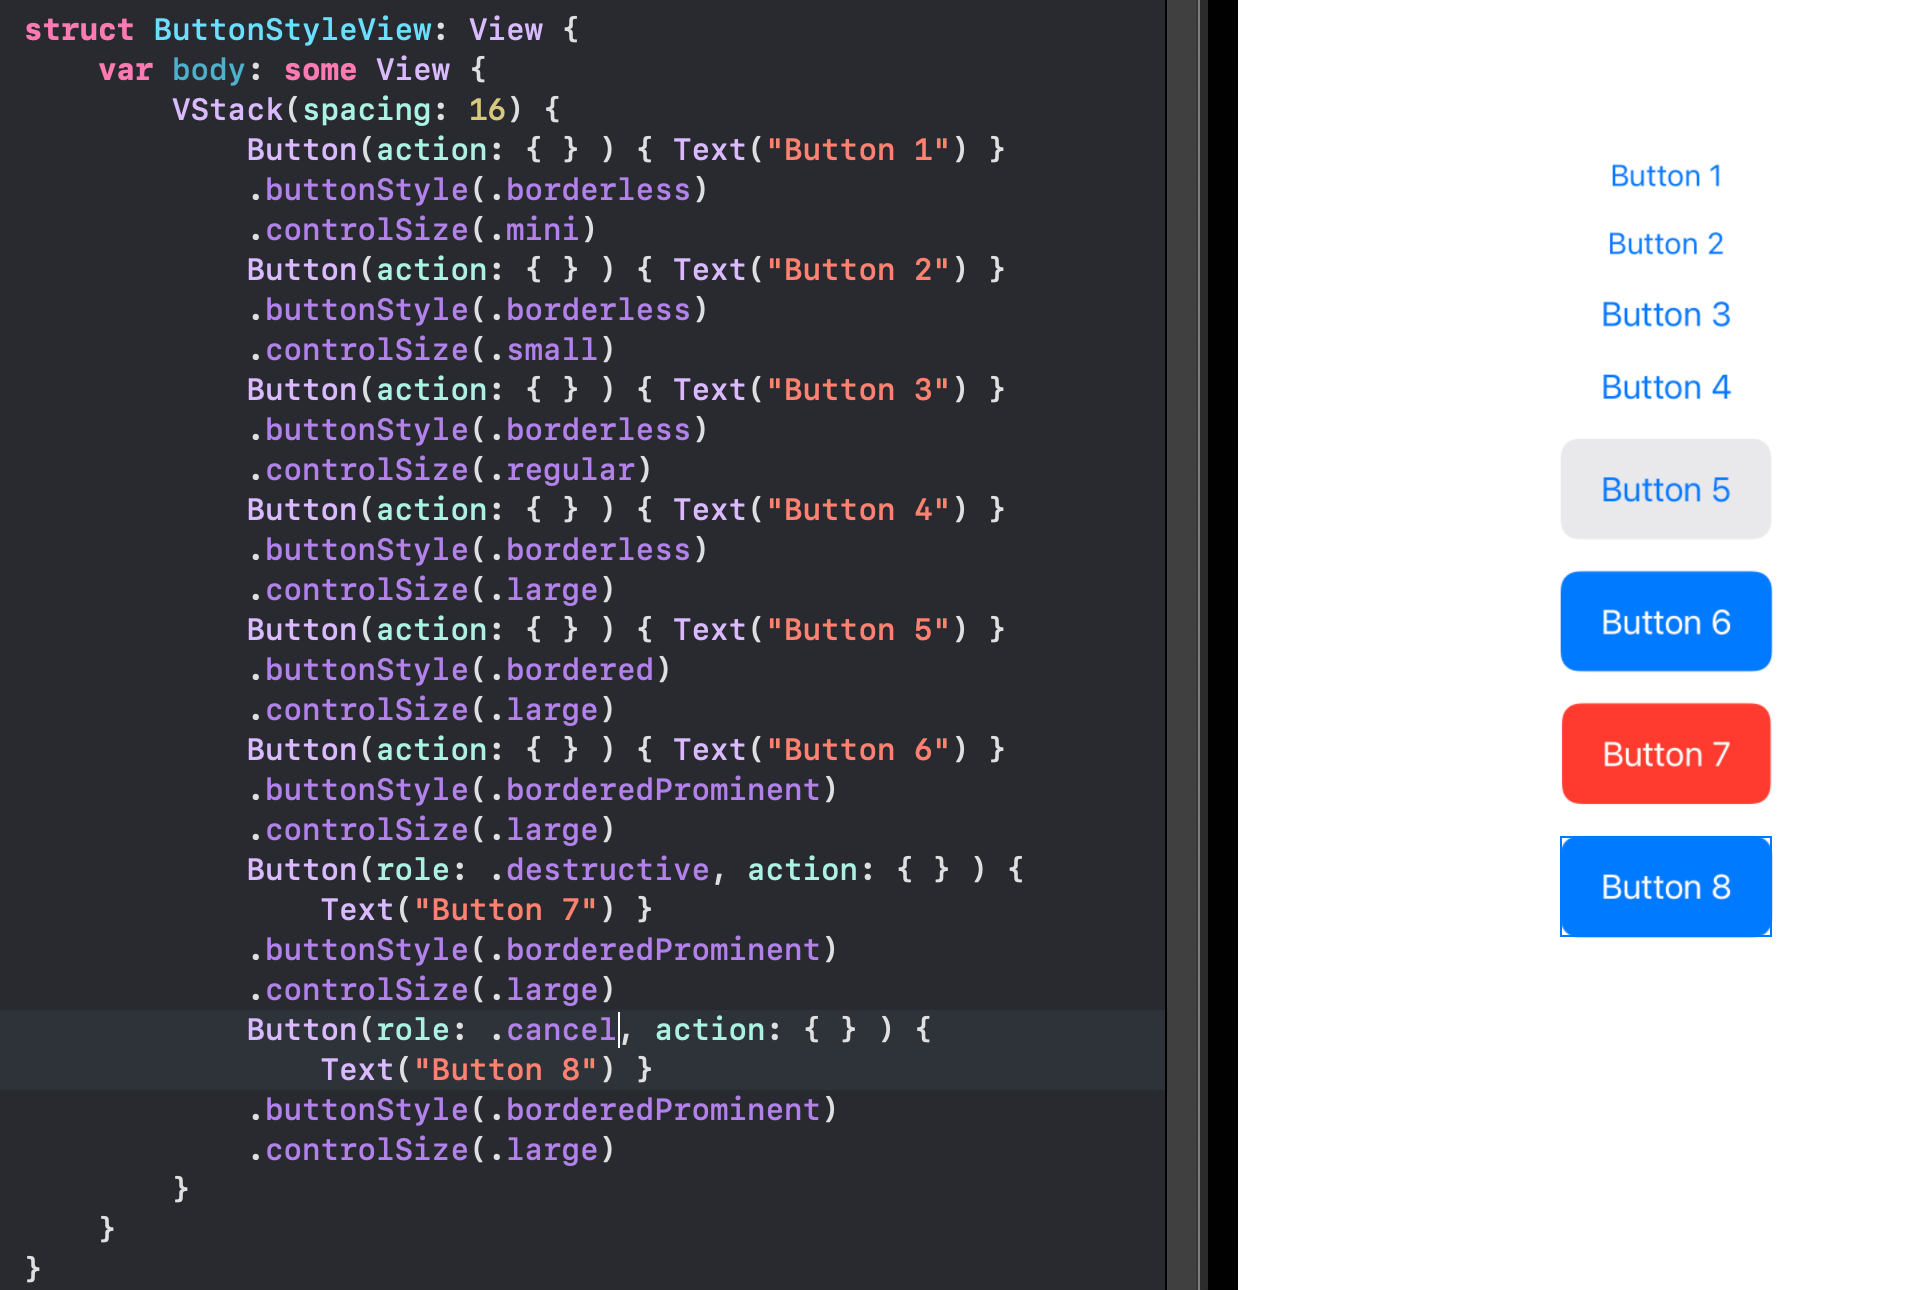 Xcode. Showing button source code and the associated previews